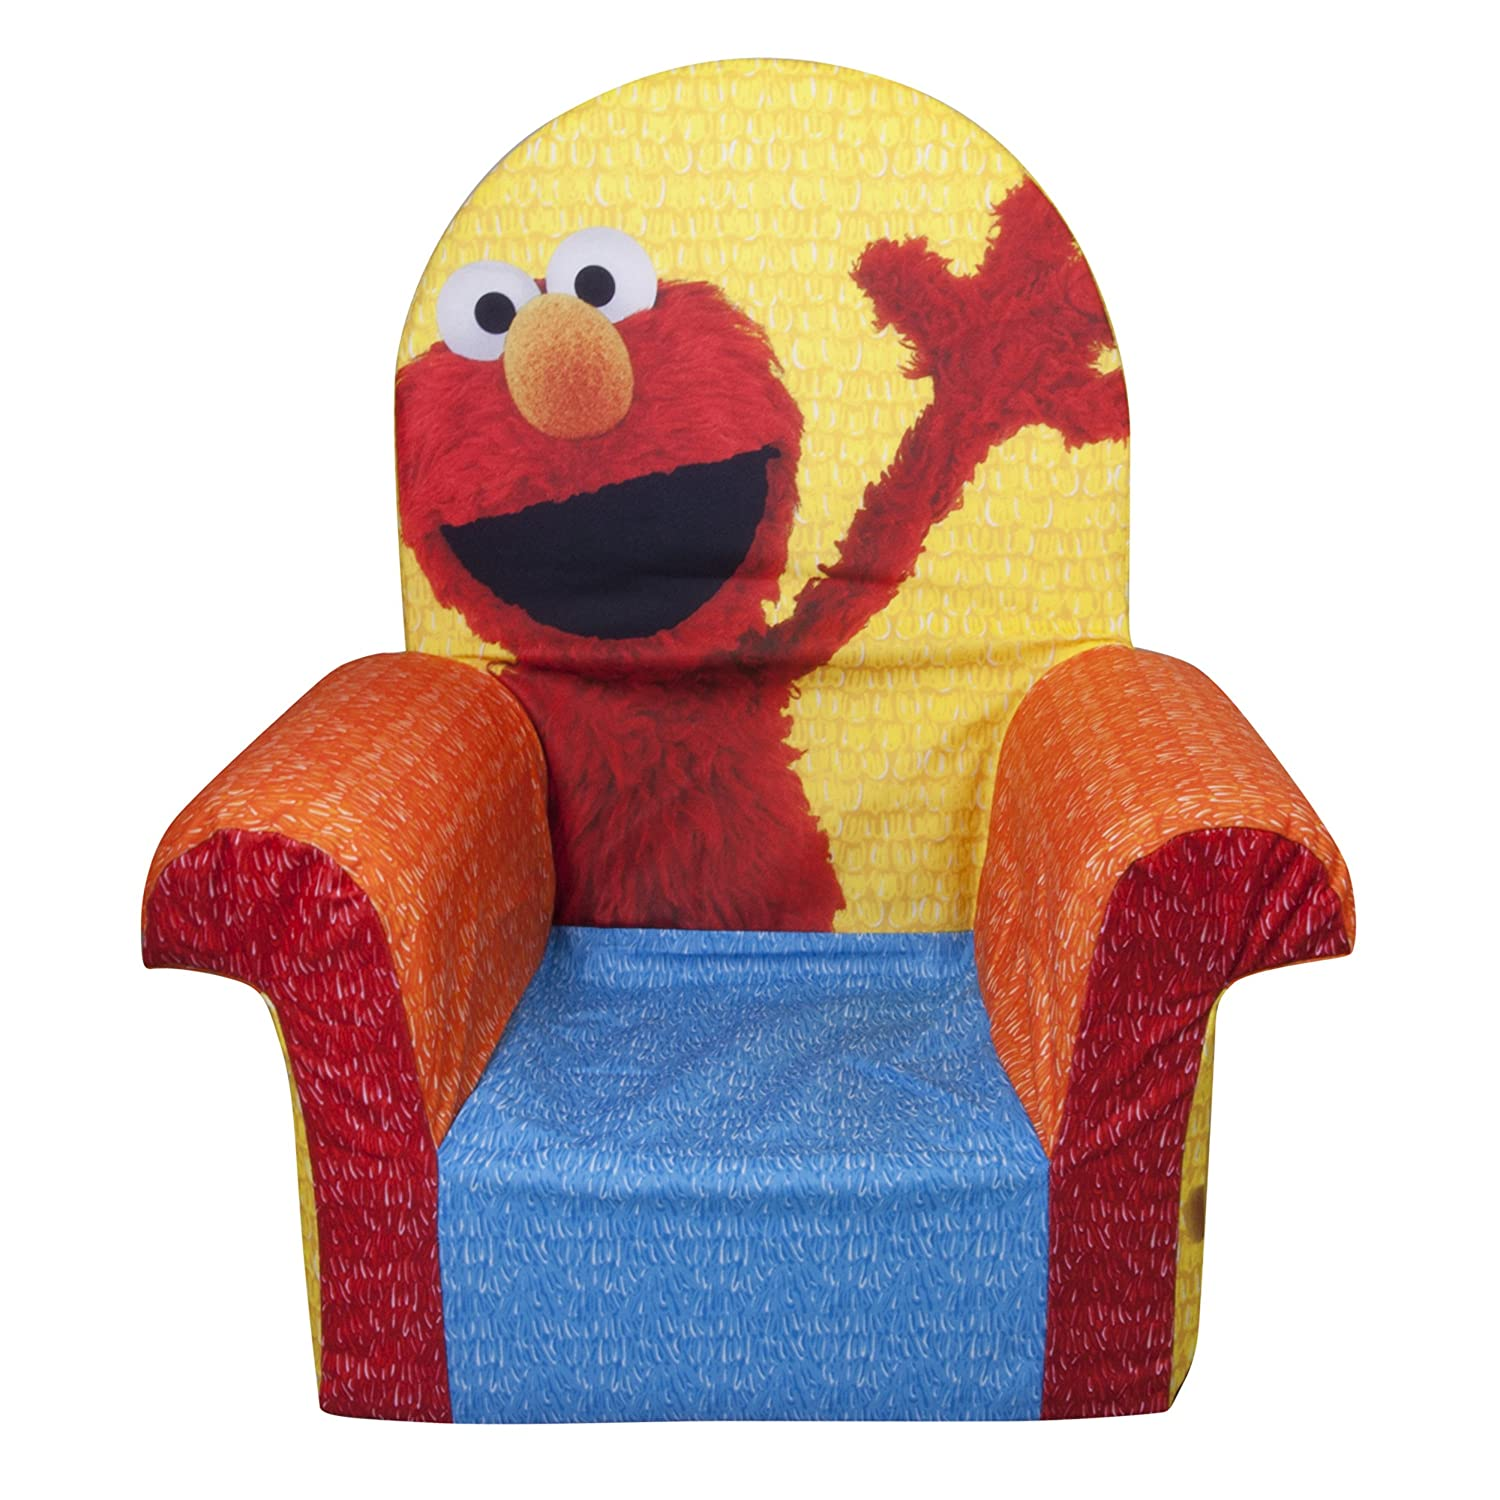 Elmo folding chair - Amazon Com Marshmallow Furniture Children S Foam High Back Chair Sesame Street S Elmo By Spin Master Toys Games